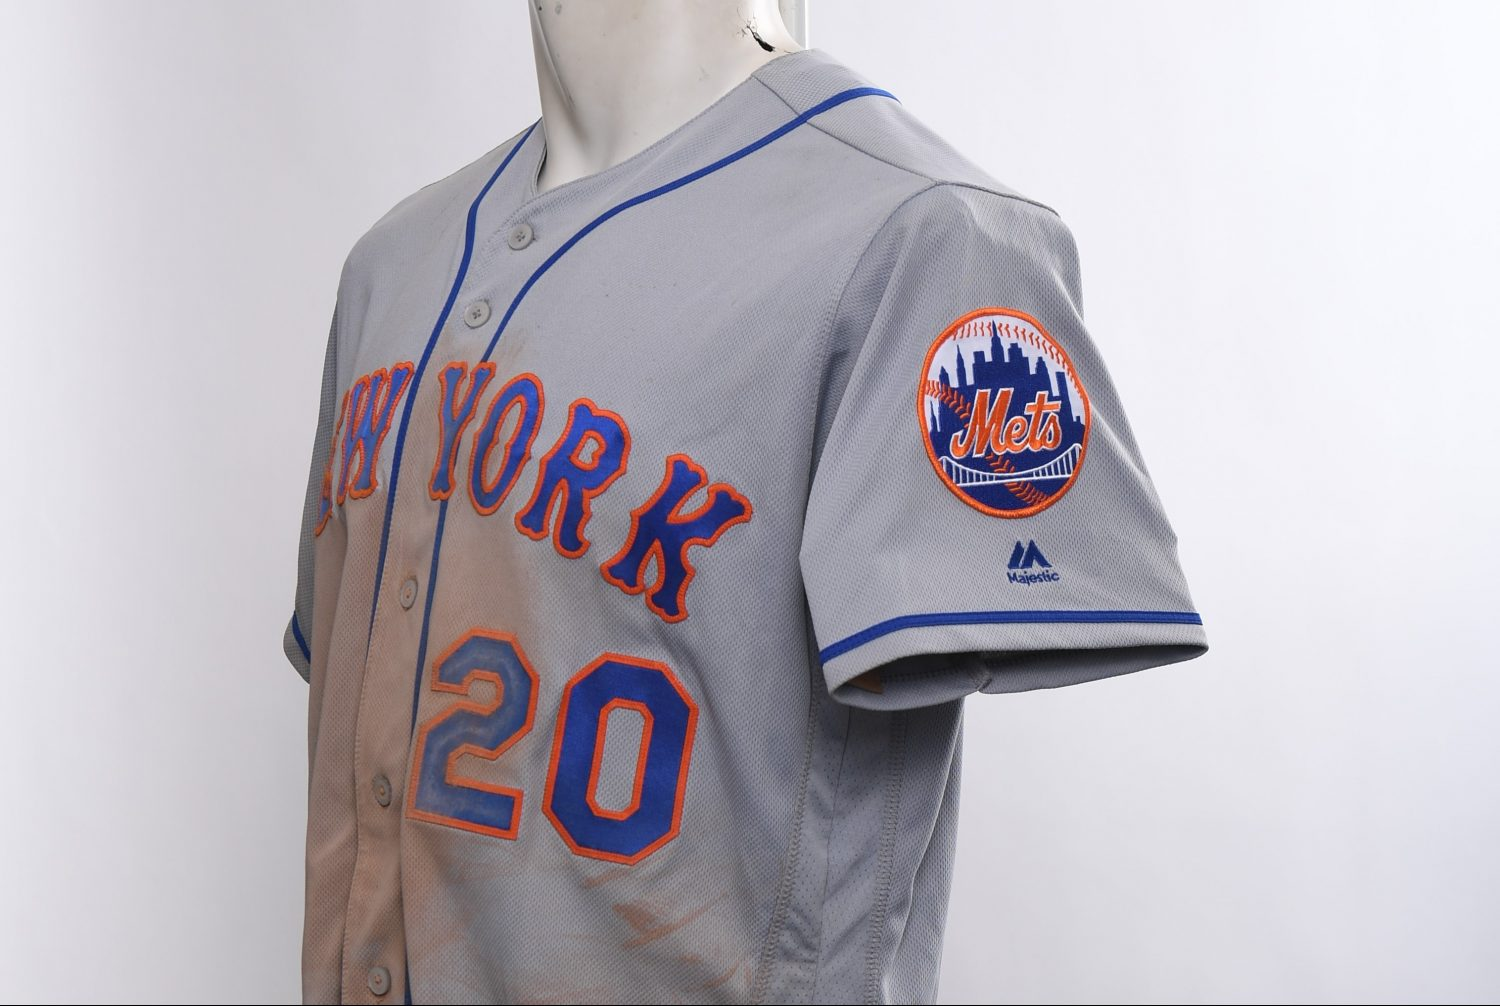 Pete Alonso's Game-Worn Jersey from First Two Games